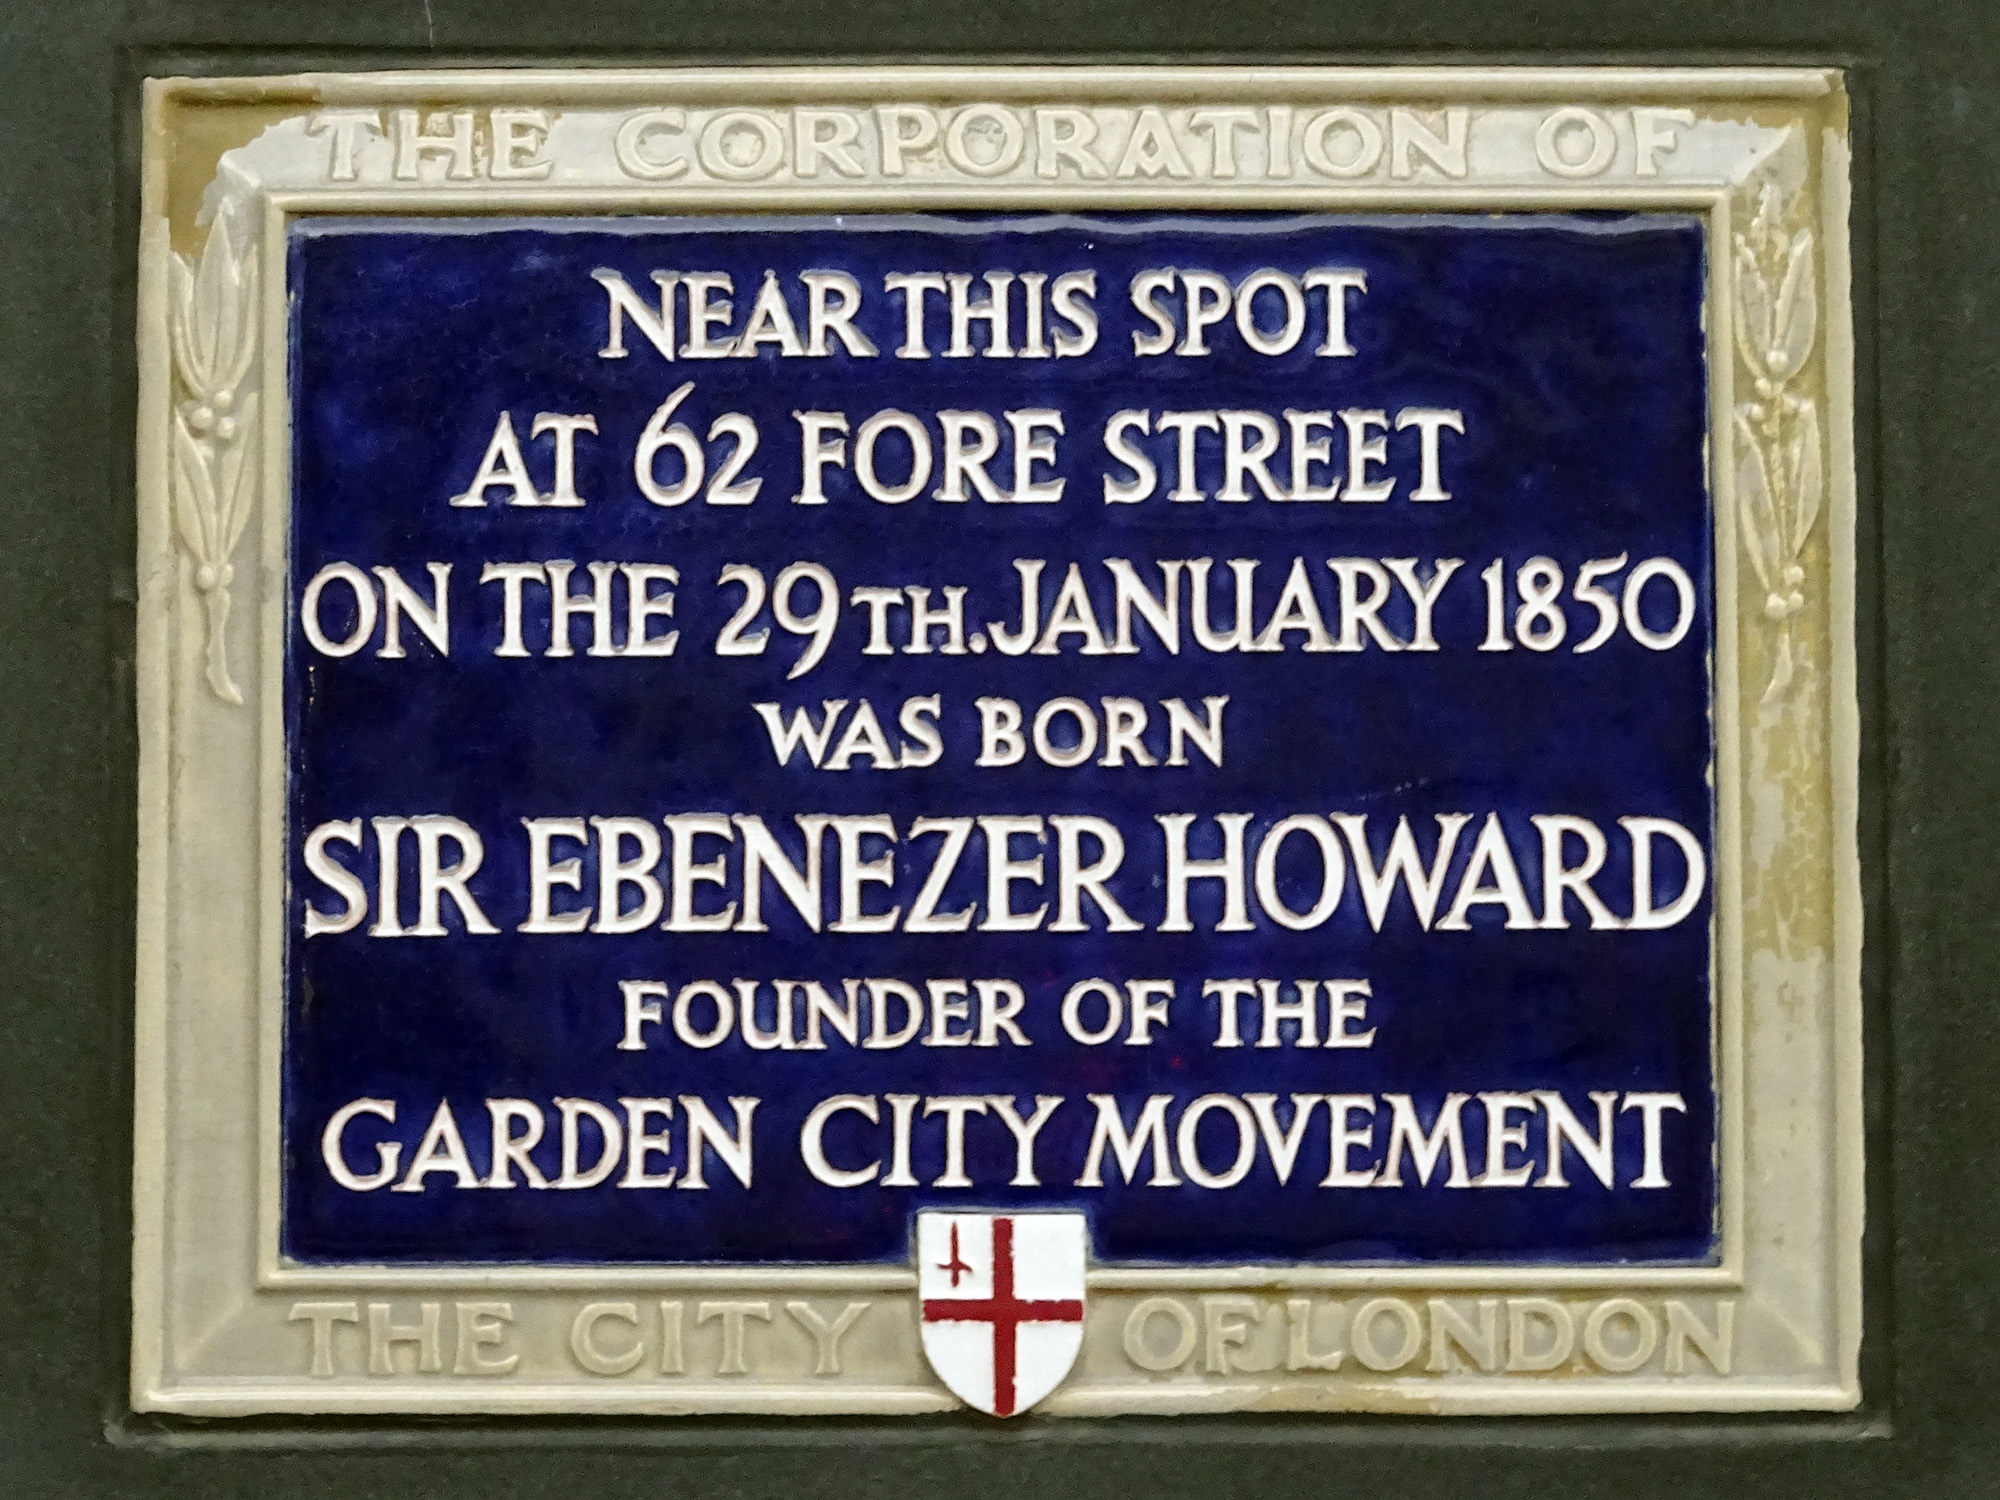 Near this spot at 62 Fore Street on the 29th January 1850 was born Sir Ebenezer Howard founder of the Garden City Movement.jpg